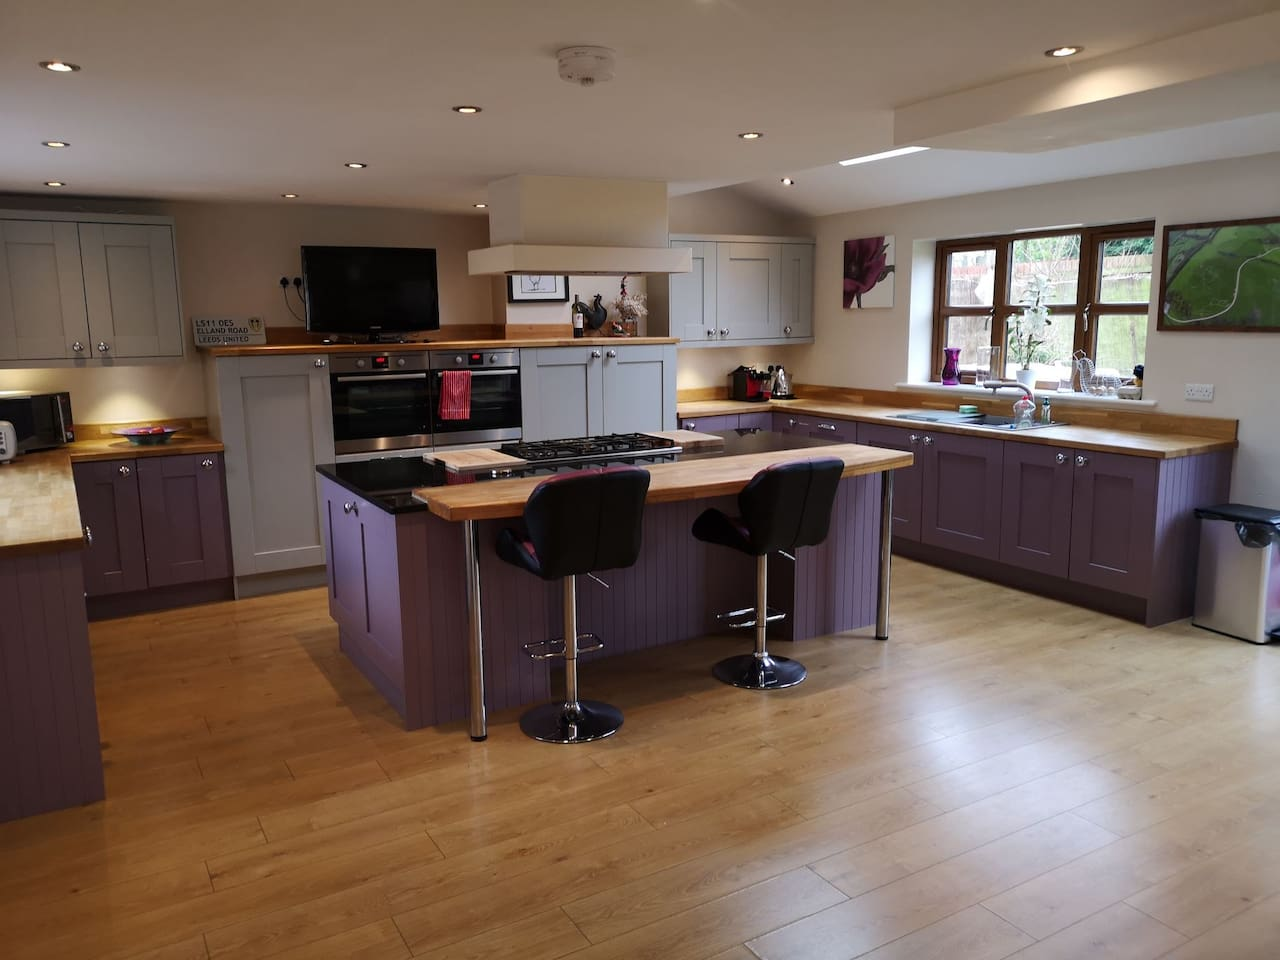 Kitchen is all yours, I'm hardly ever in it. Comes with two ovens , 5 hobs, microwave, freezer, fridge, dishwasher, toaster and of course kettle and lots of cupboard space.